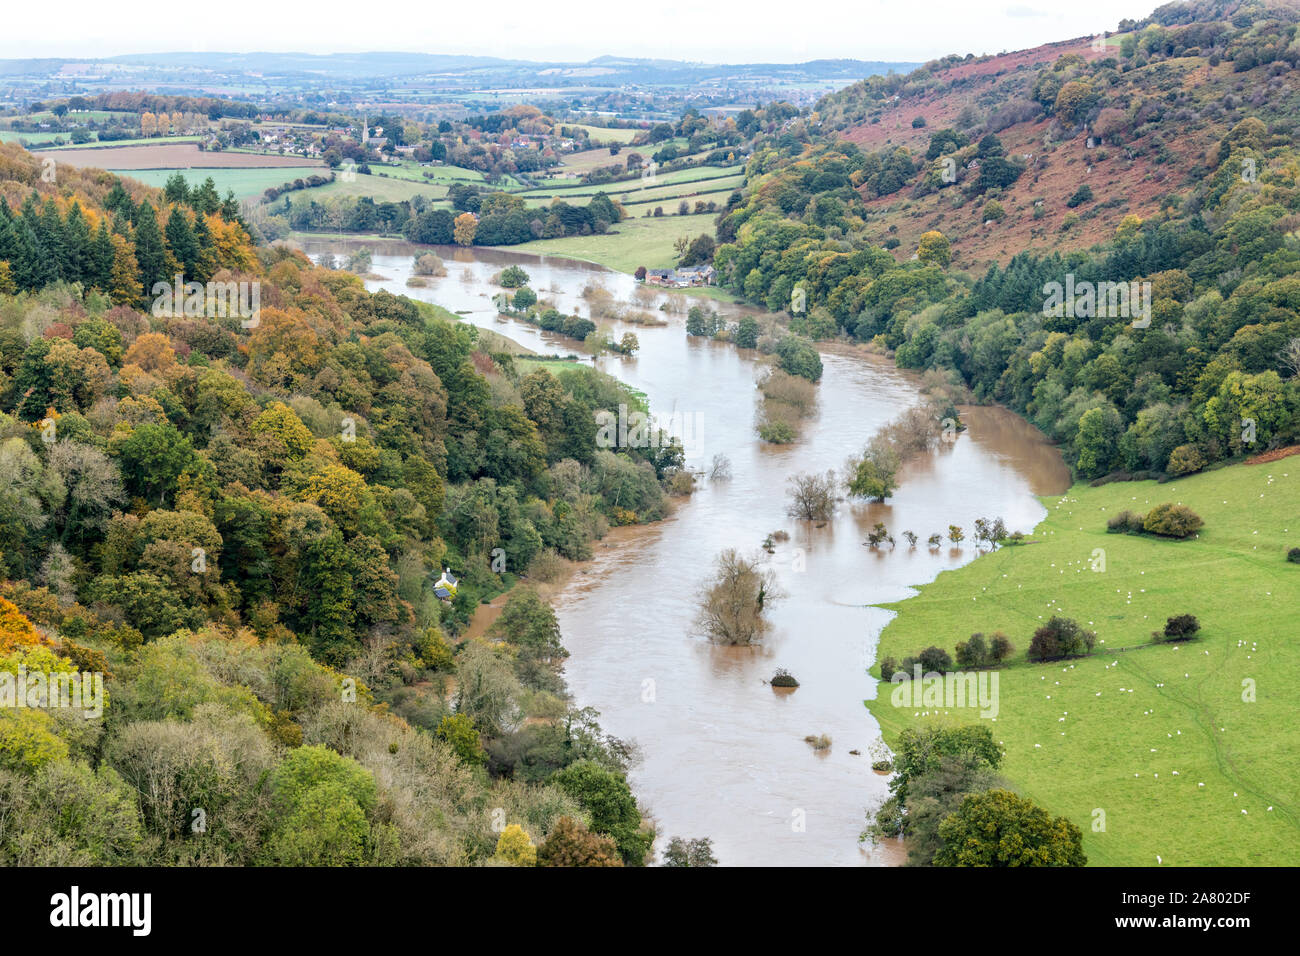 The River Wye in flood  below Coppett Hill on 28.10.2019 viewed from Symonds Yat Rock, Herefordshire UK - The flooding was due to heavy rain in Wales. Stock Photo